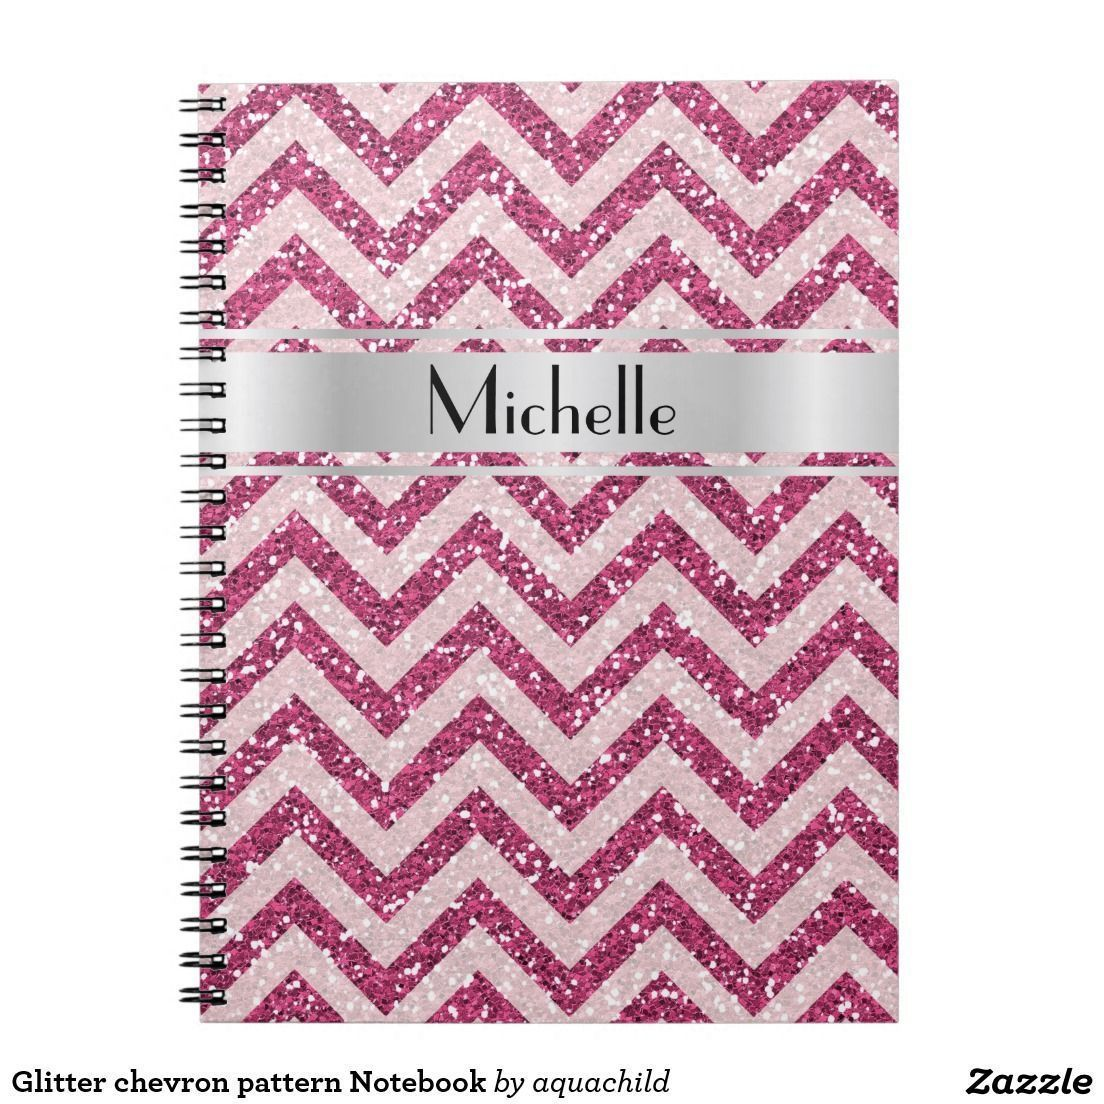 Glitter chevron pattern Notebook | Zazzle.com #pinkchevronwallpaper Glitter chevron pattern Notebook #pinkchevronwallpaper Glitter chevron pattern Notebook | Zazzle.com #pinkchevronwallpaper Glitter chevron pattern Notebook #pinkchevronwallpaper Glitter chevron pattern Notebook | Zazzle.com #pinkchevronwallpaper Glitter chevron pattern Notebook #pinkchevronwallpaper Glitter chevron pattern Notebook | Zazzle.com #pinkchevronwallpaper Glitter chevron pattern Notebook #pinkchevronwallpaper